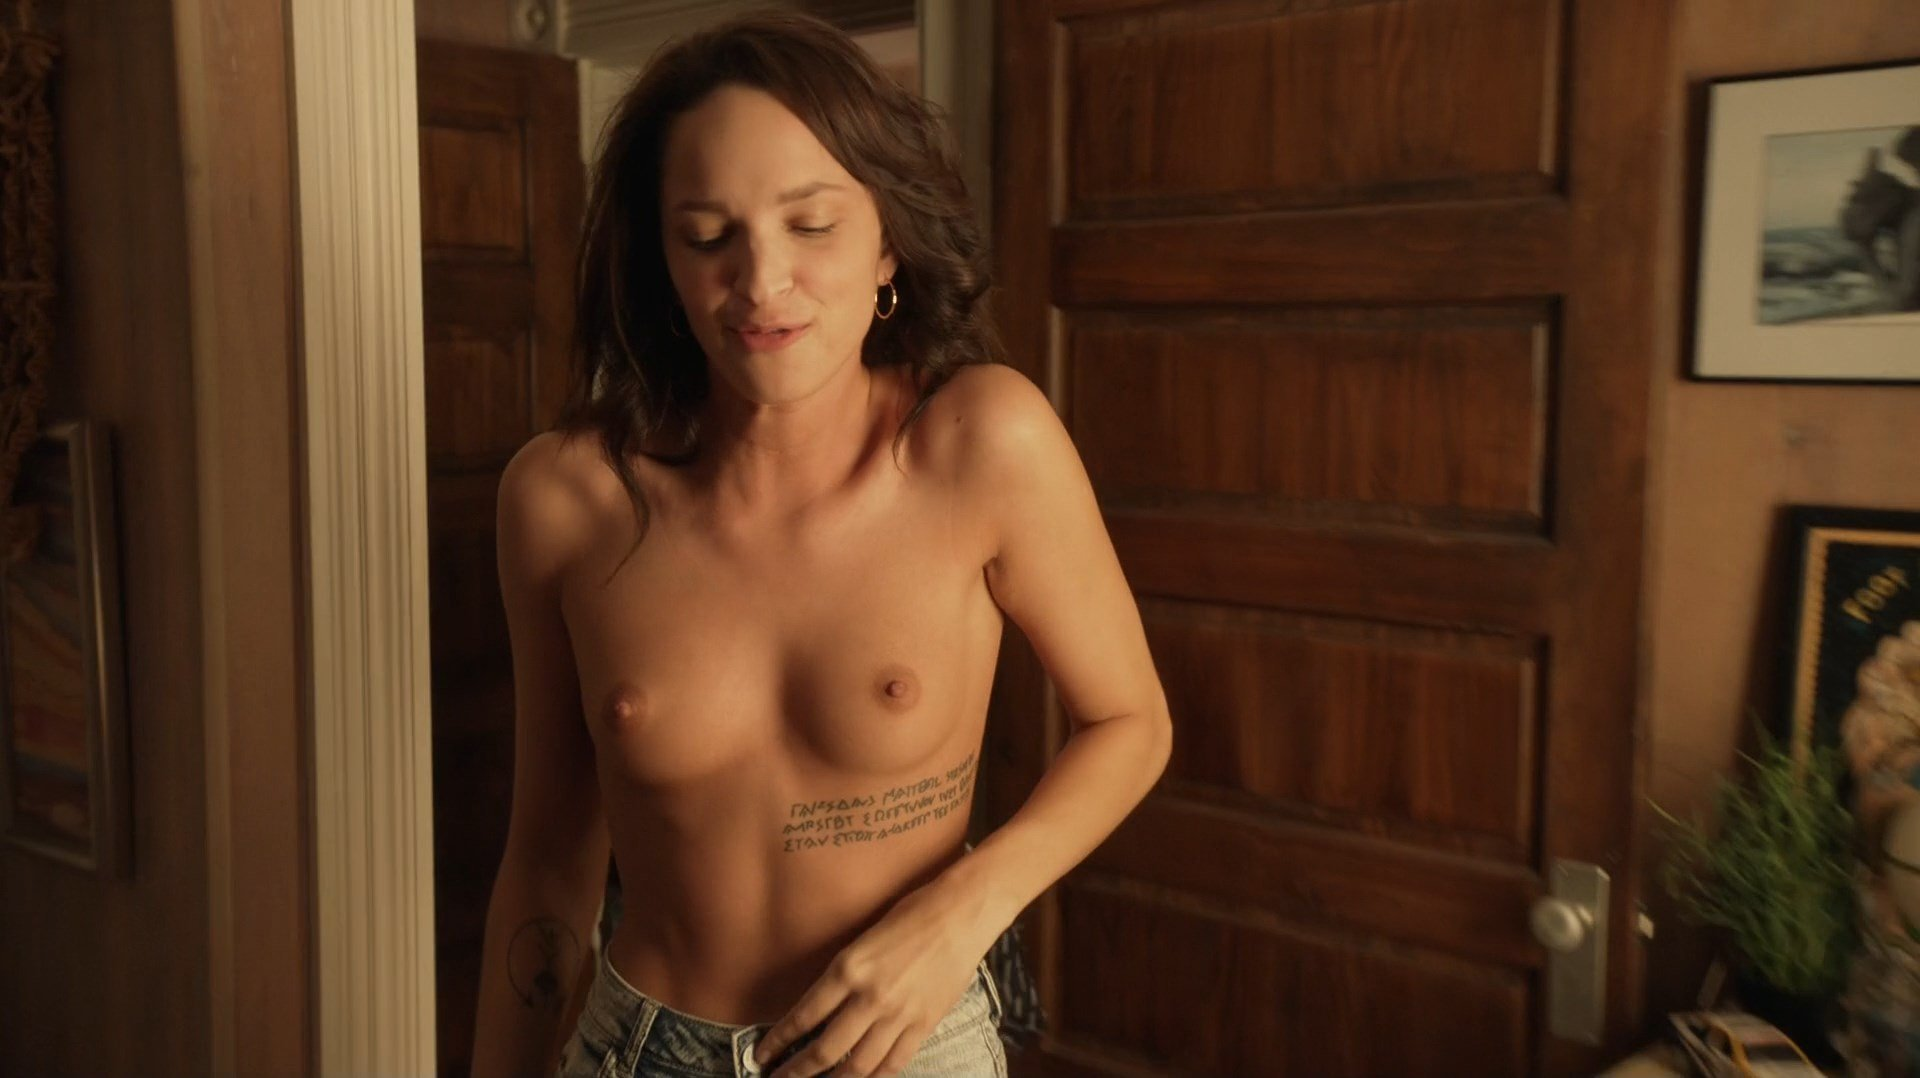 Shameless nude scenes, pics clips ready to watch